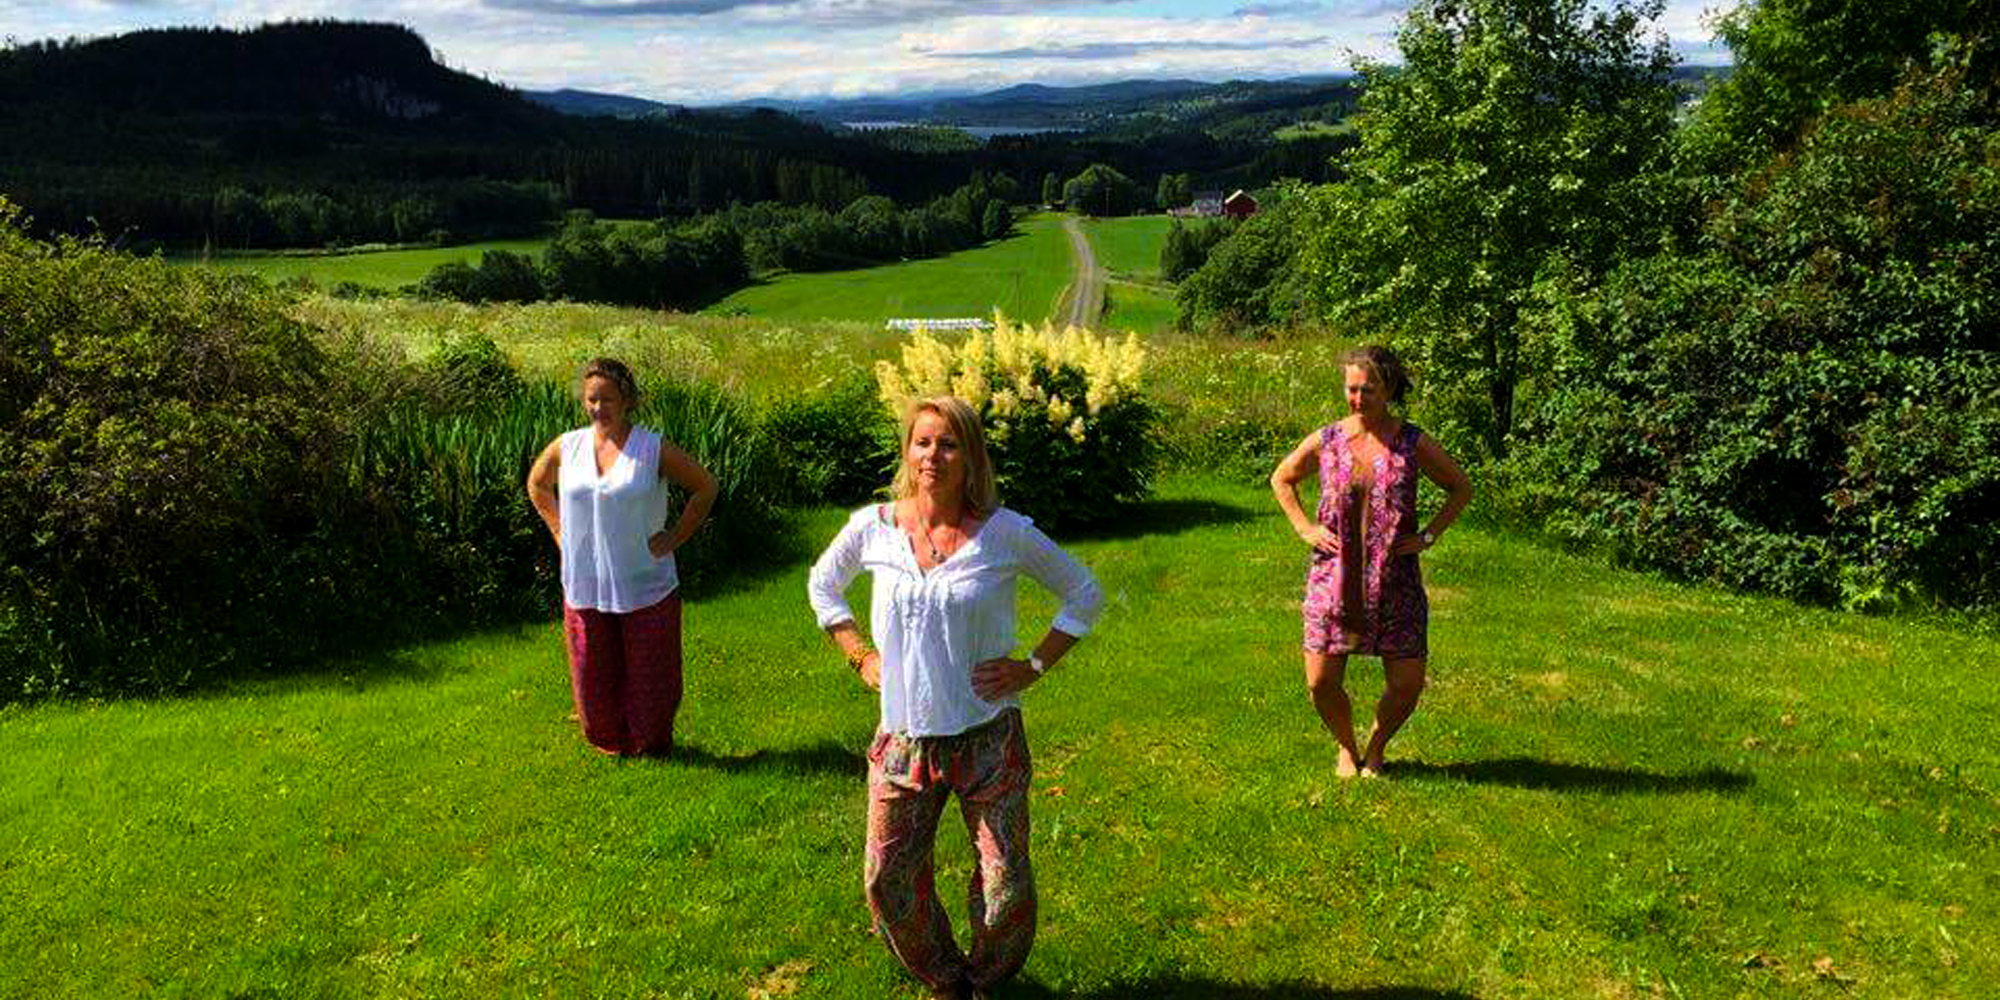 Troset in Levanger Municipality: Qigong in the garden . Copyright: Heidi Troset